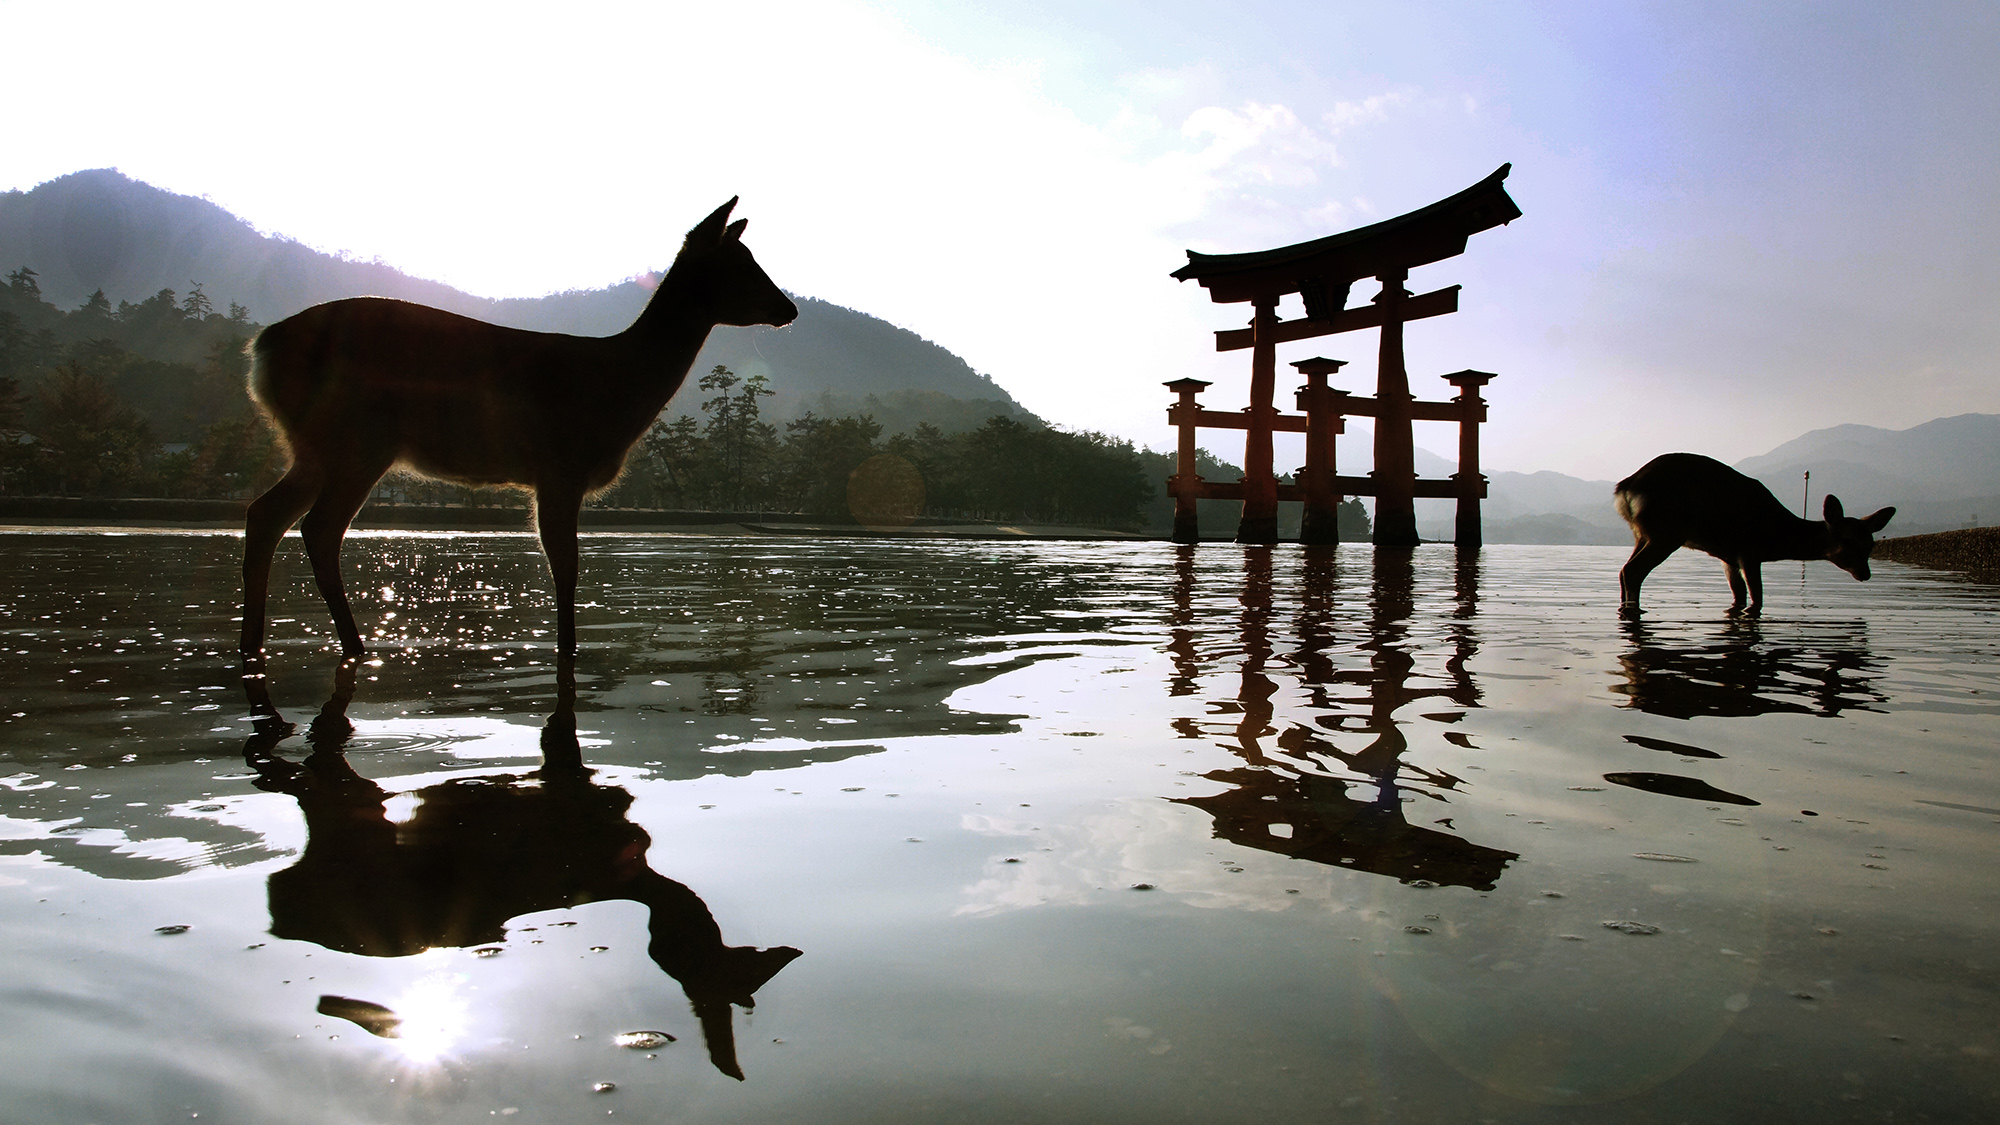 DEER DIARY - JAPAN   I have visited this beautiful shrine many times and never tire of the amzing sunsets and if you get your feet wet, the many deer on the island will almost pose for you.